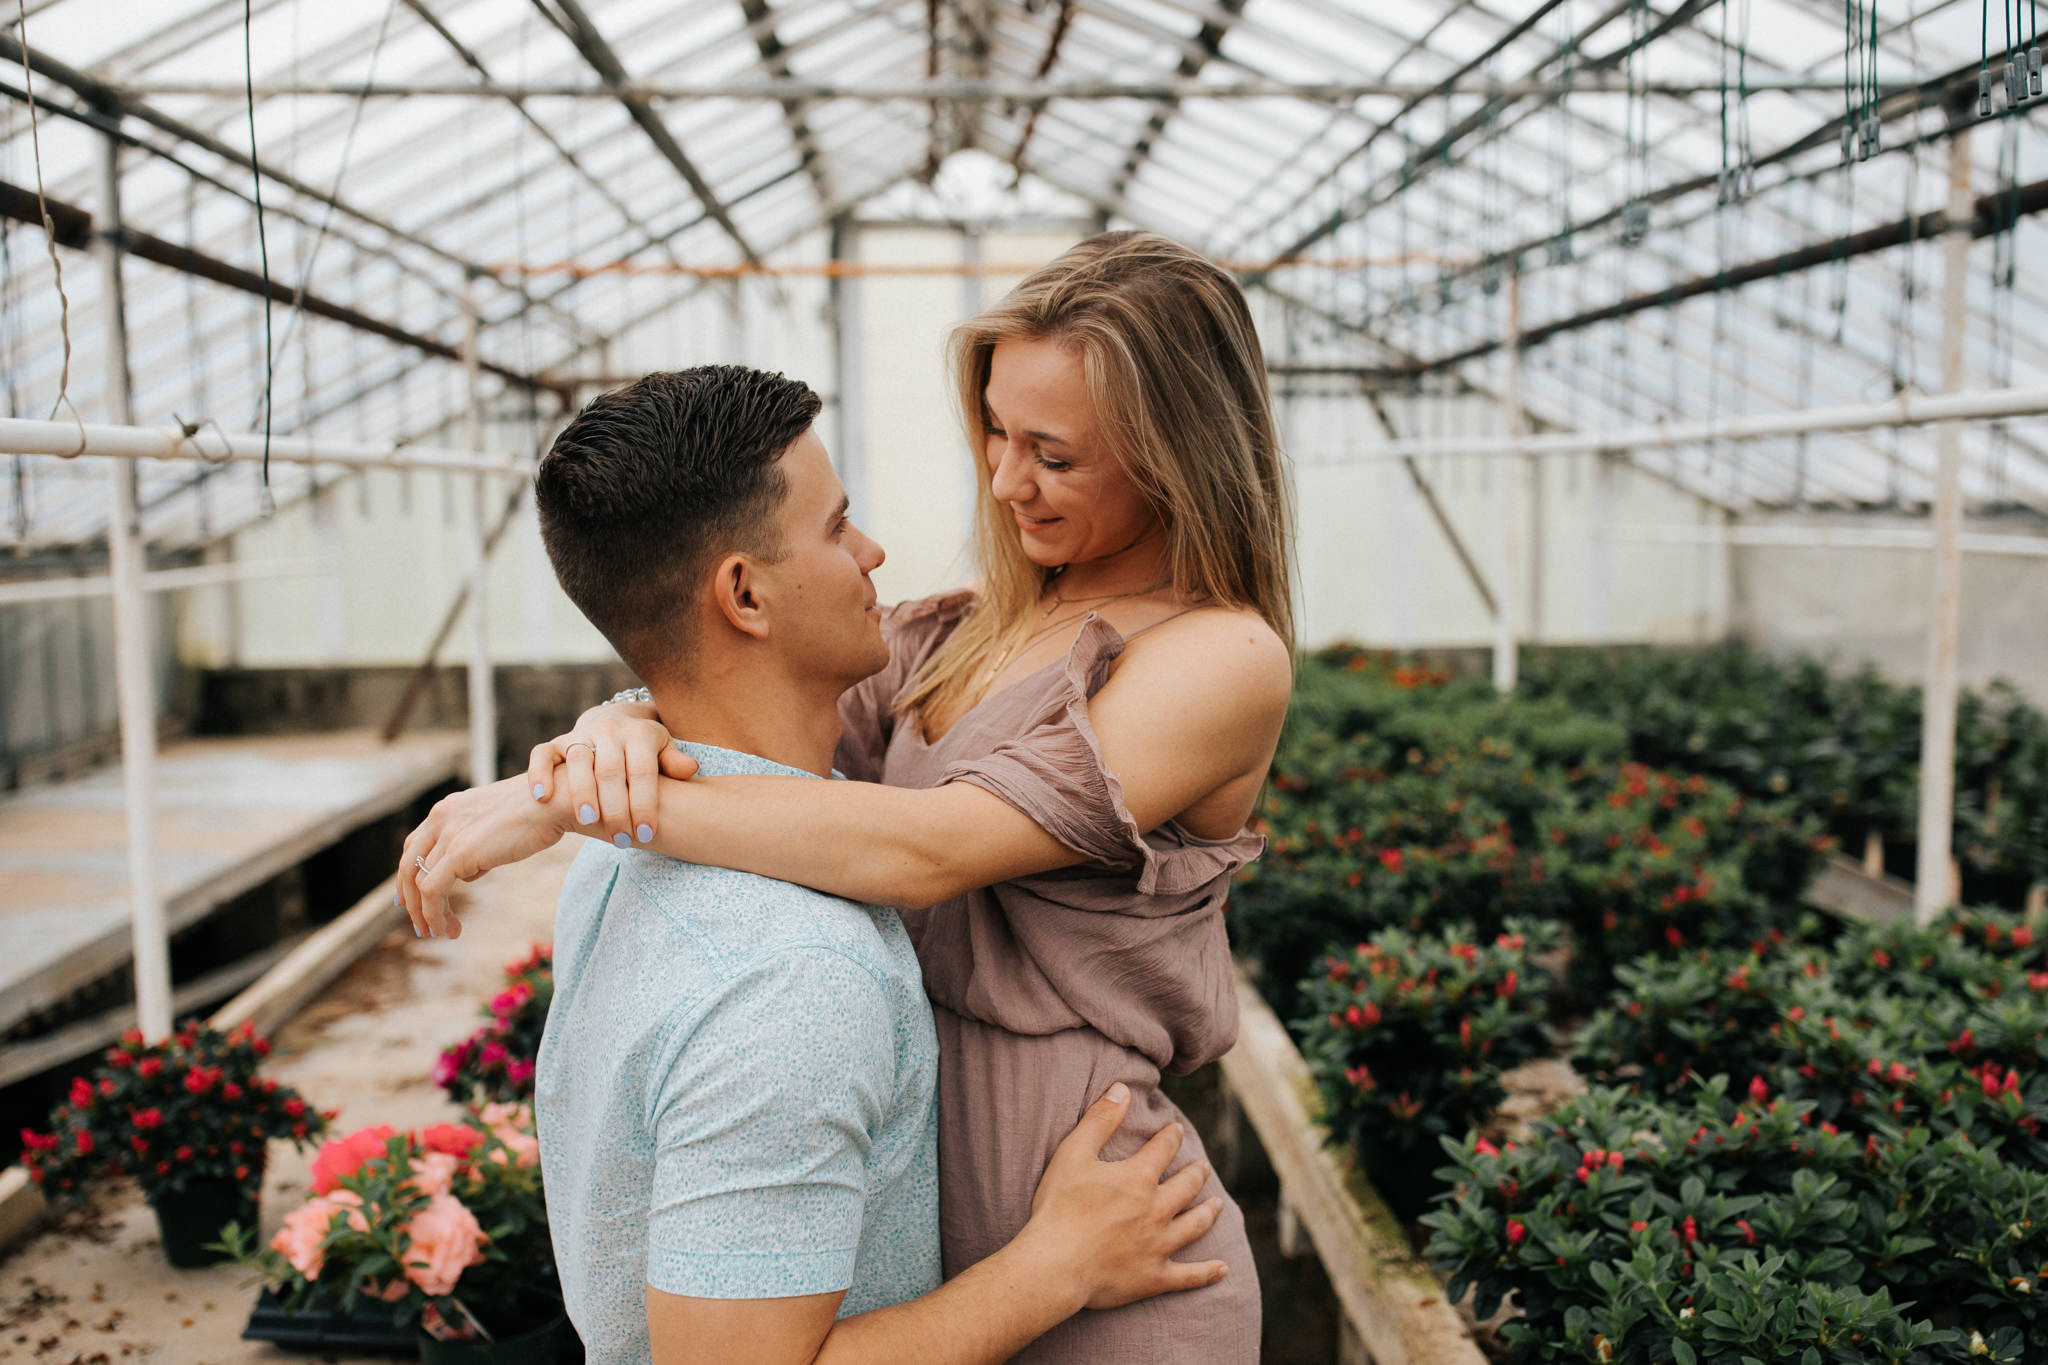 memphis-engagement-photographer-thewarmtharoundyou-greenhouse-engagement-pictures (72 of 118).jpg